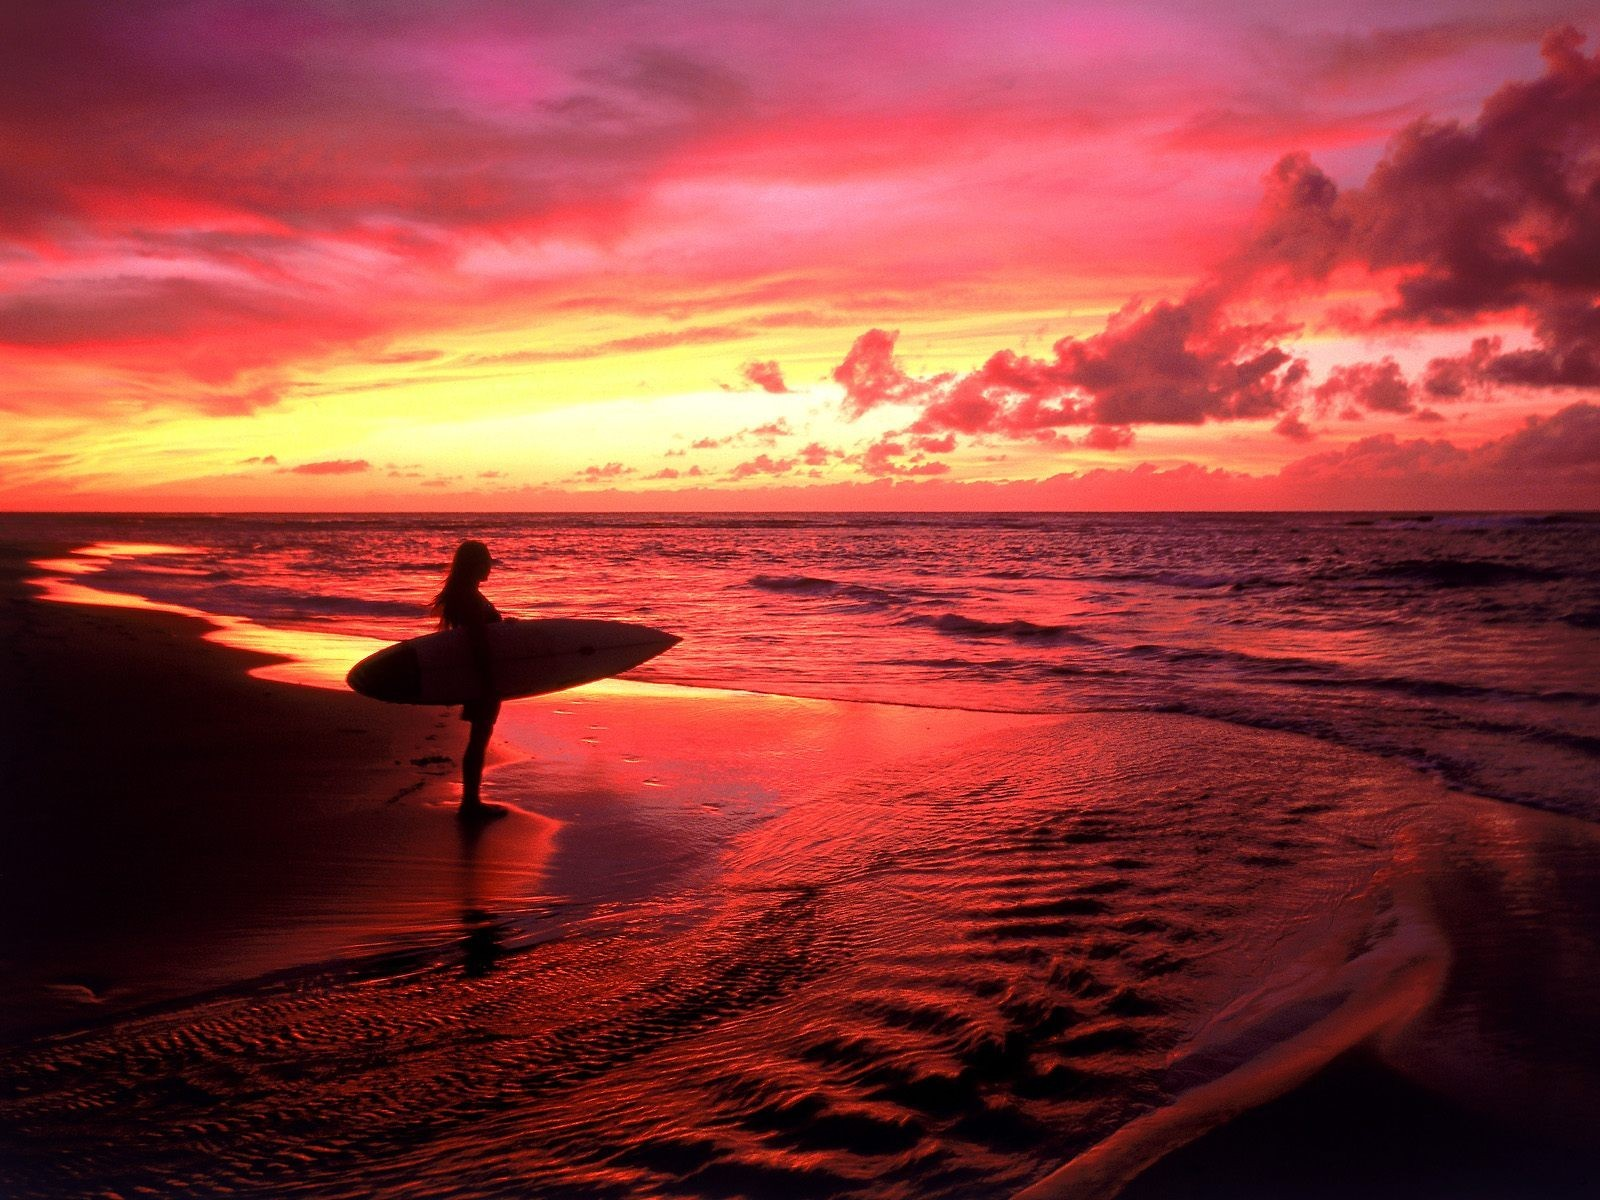 ... And Wallpapers: Sunset Wallpapers HD - Best Sunset HD Wallpapers